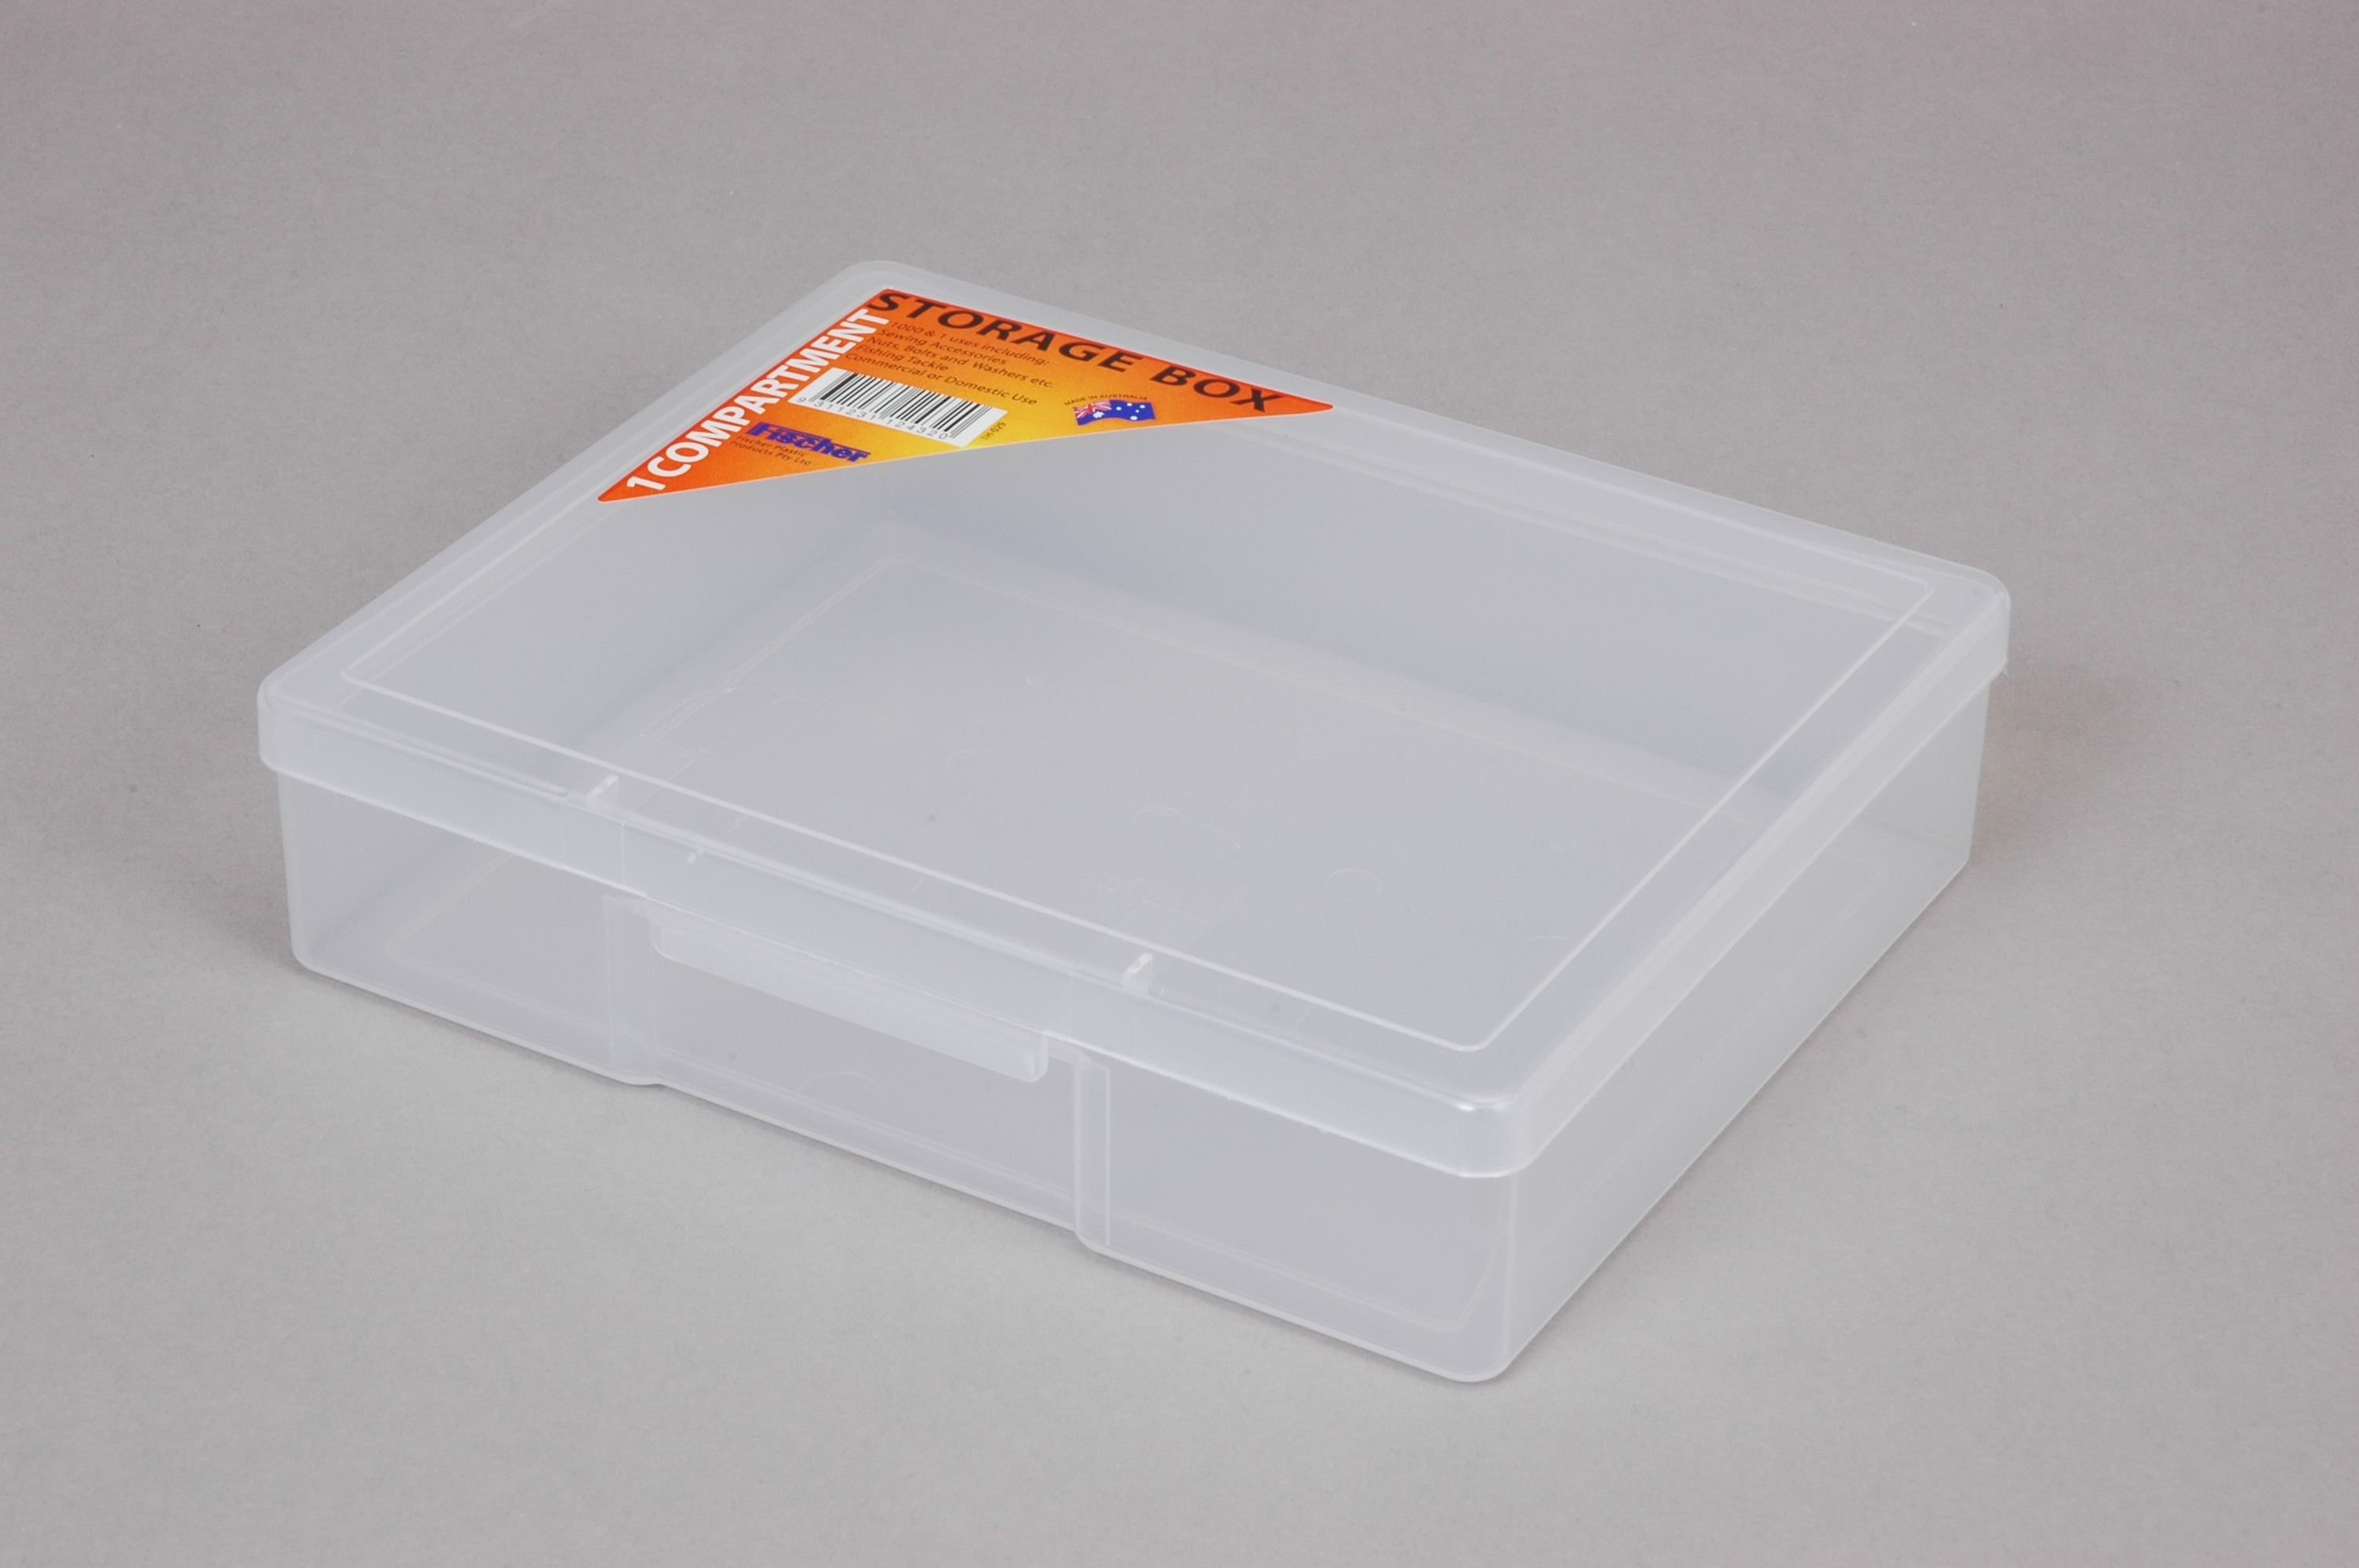 ACCESSORY BOX 1 COMP MED CLEAR (2156)